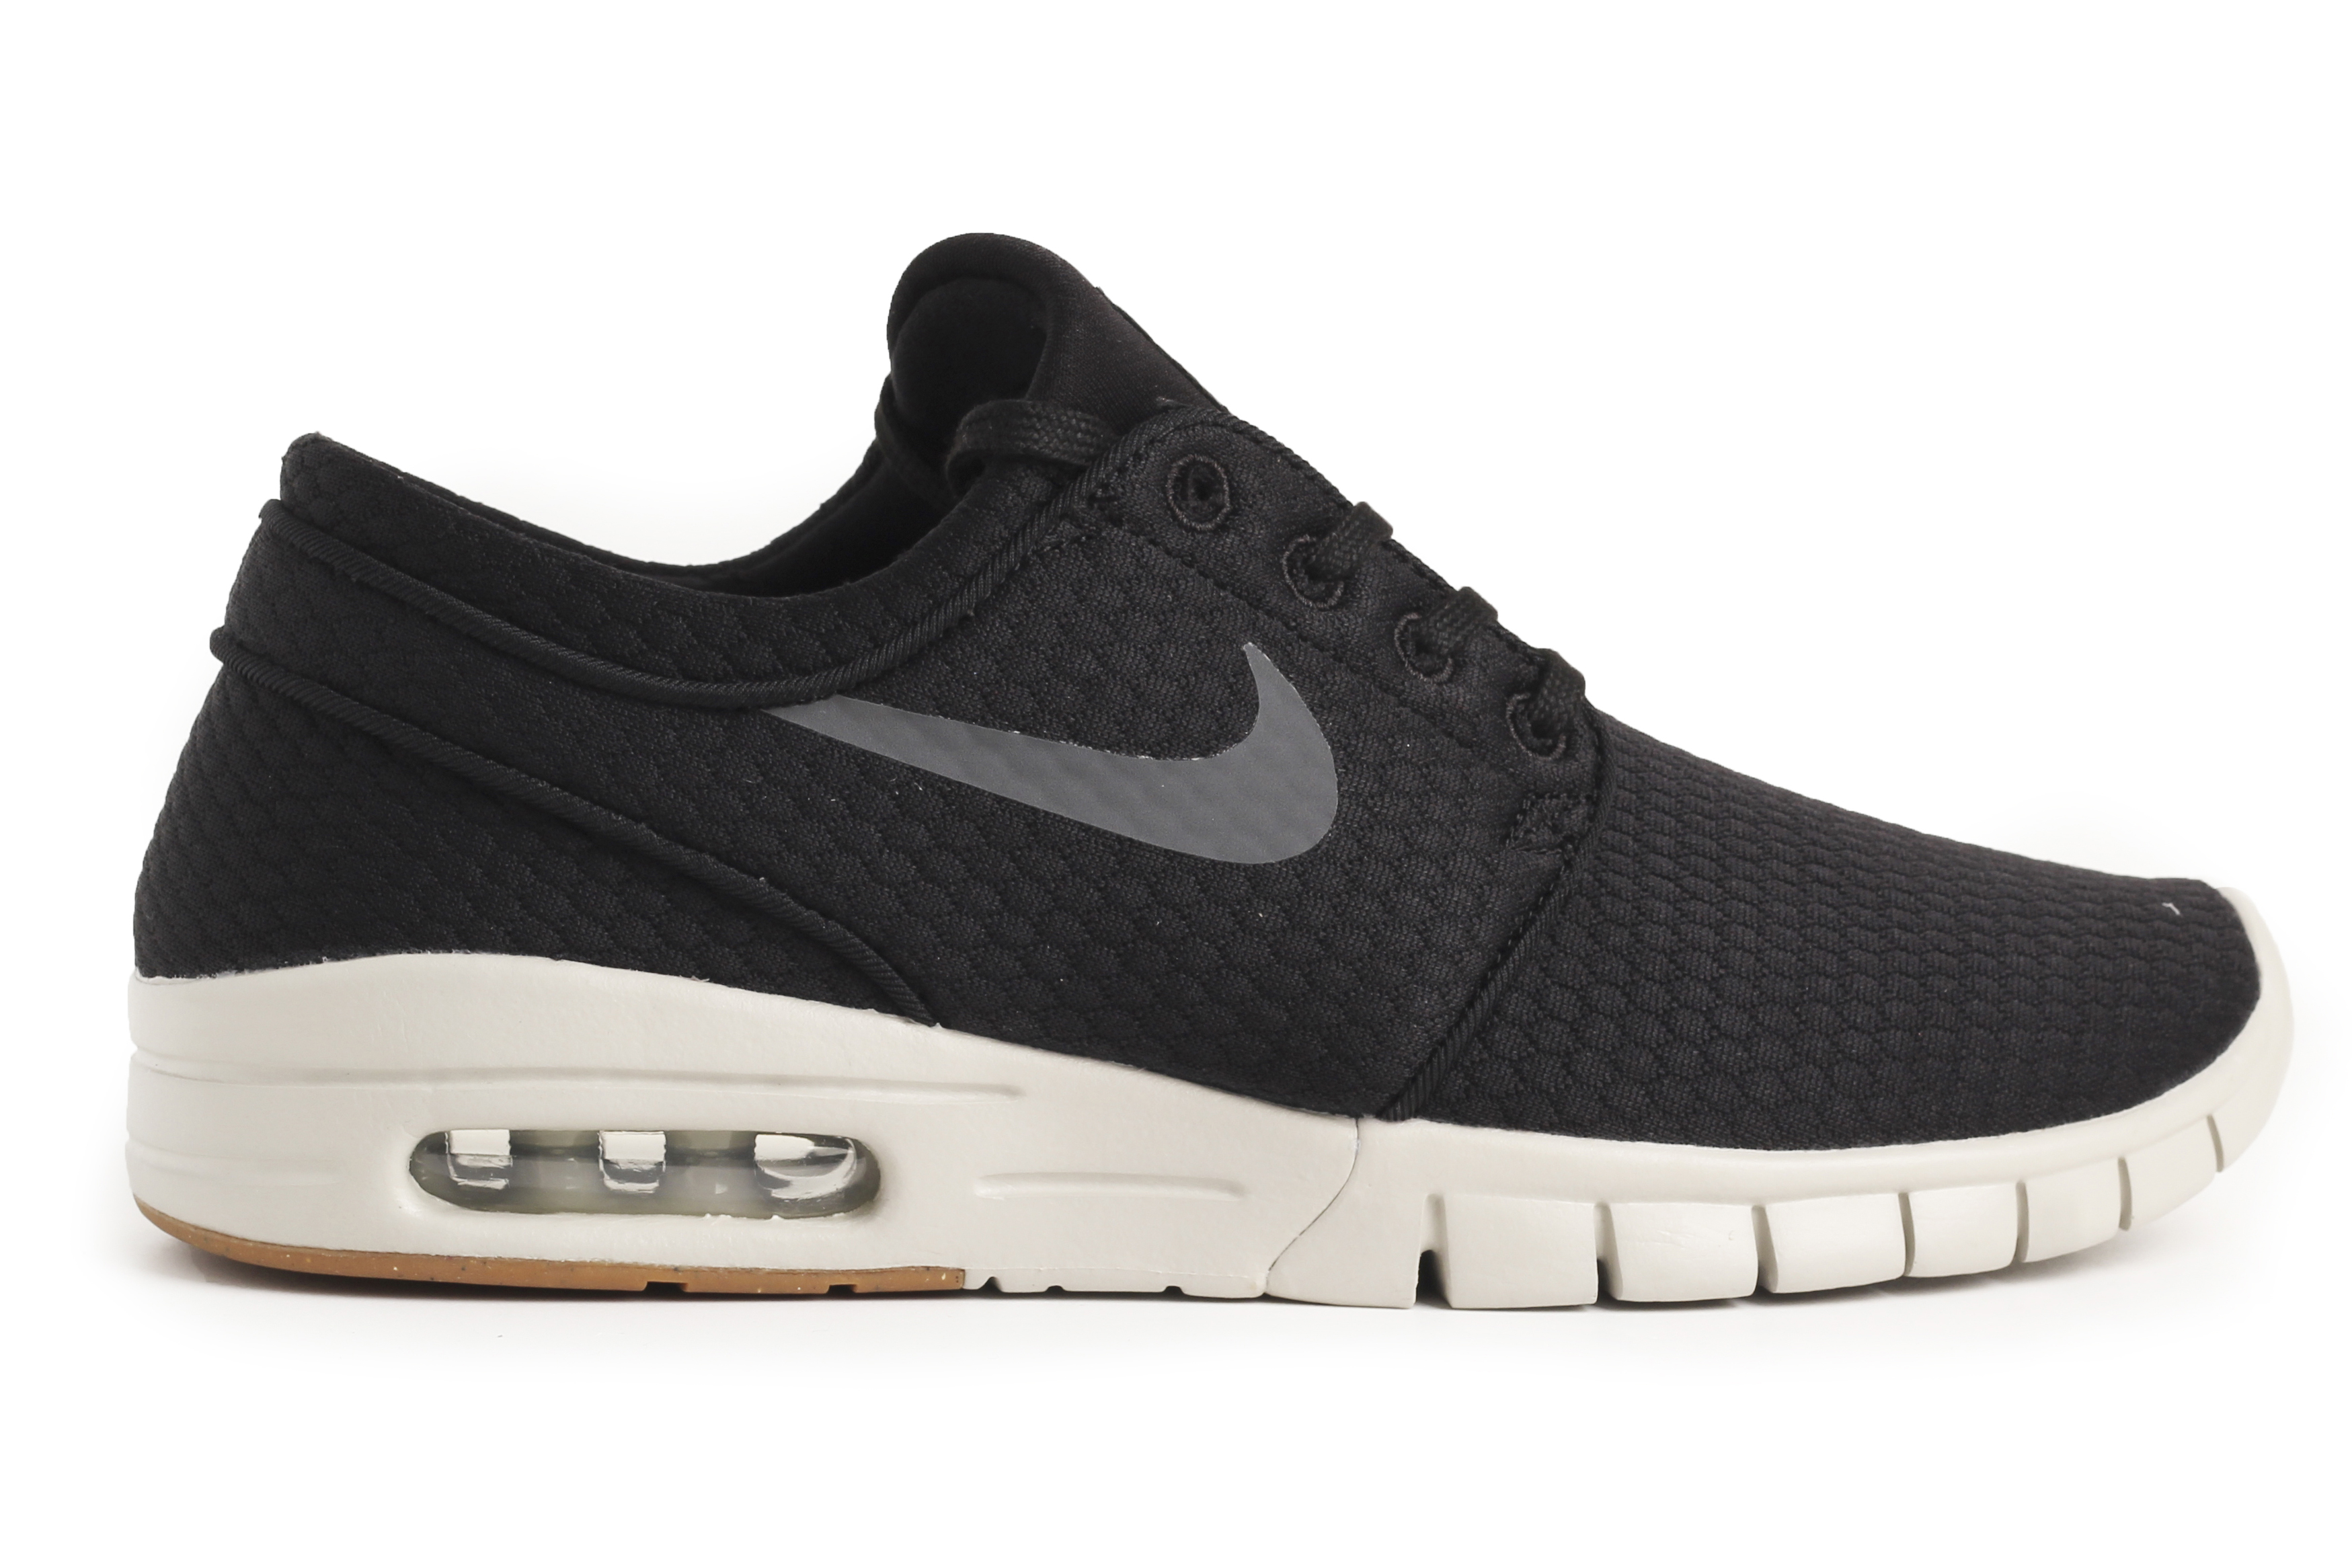 919a9df09341 Nike SB Janoski Max Black   Dark Grey - Gum - Boardvillage